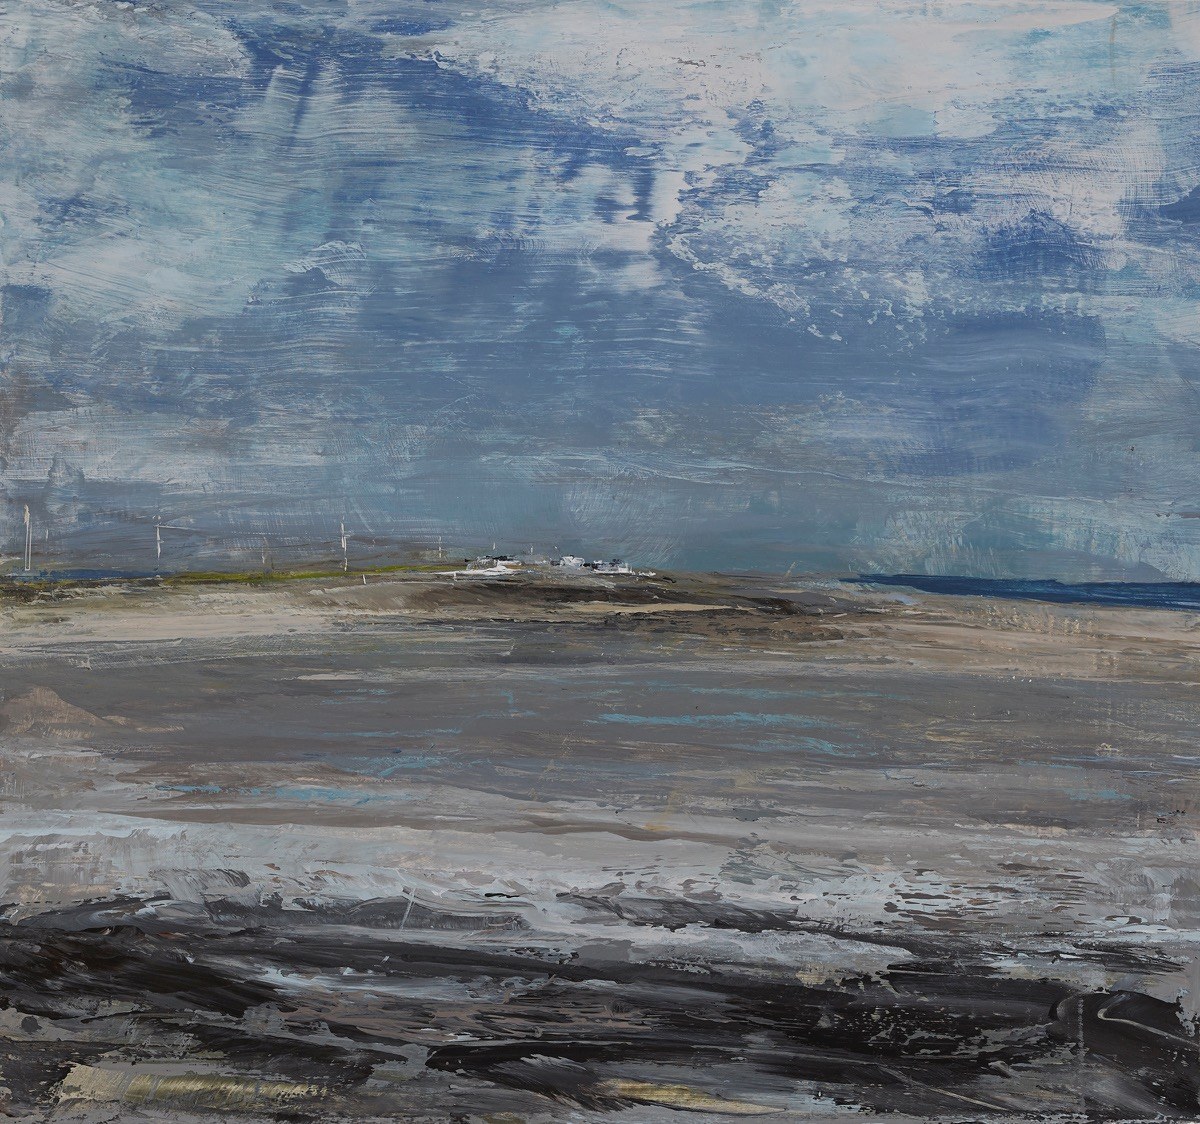 Claggan Island